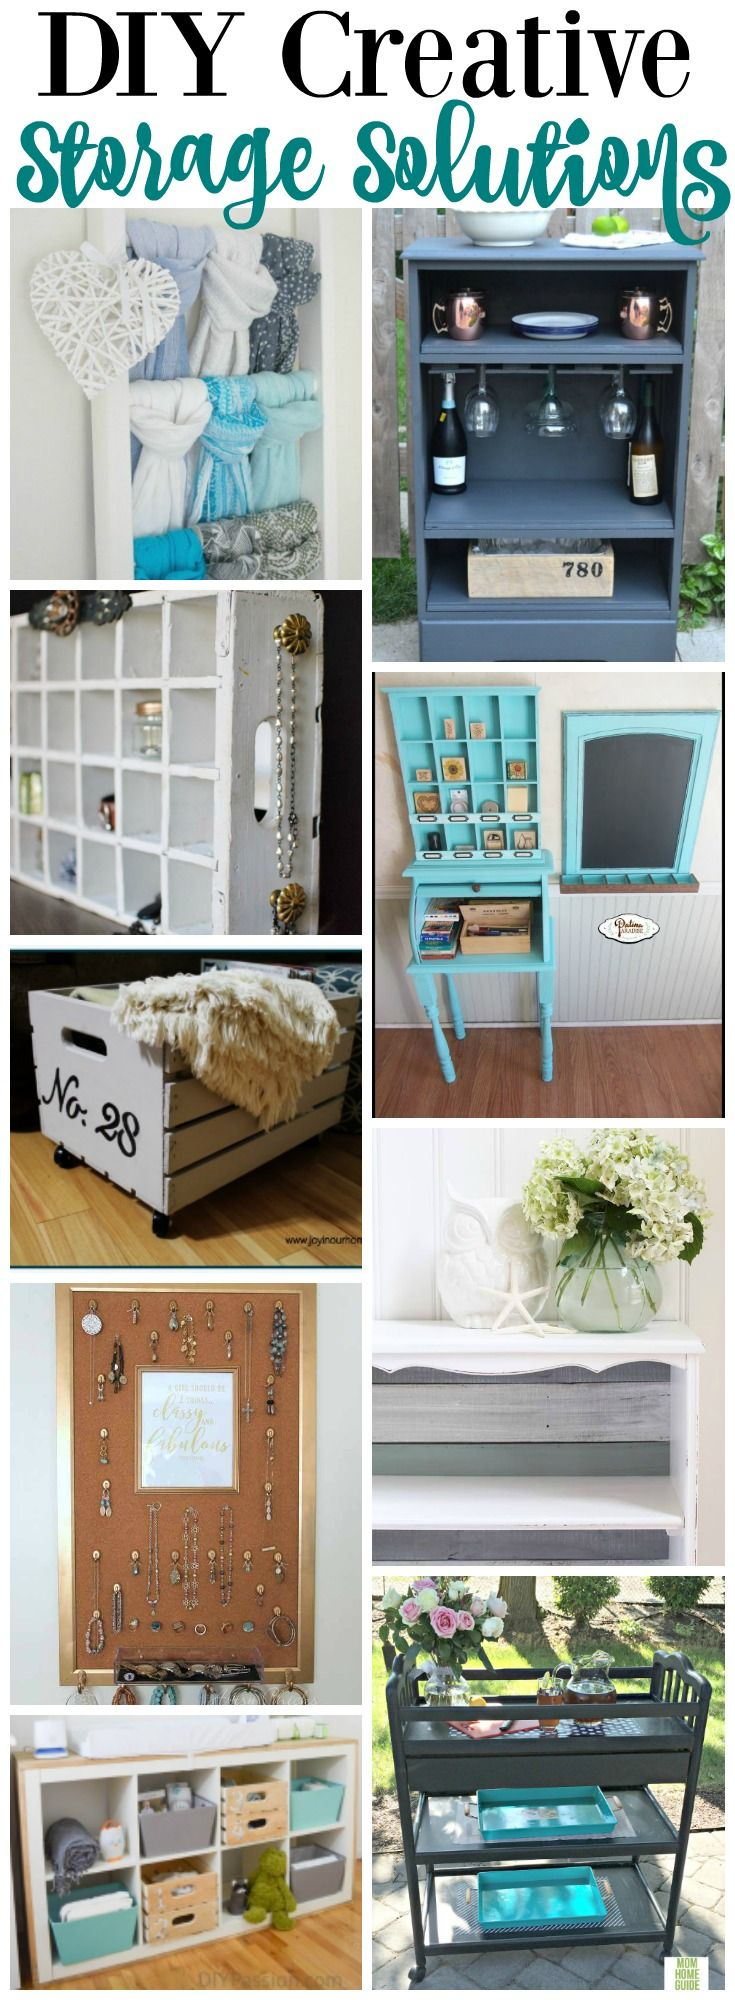 Who doesn't need more storage? All of these DIY super creative storage solutions are thrifty and unique ways to add some storage to your…